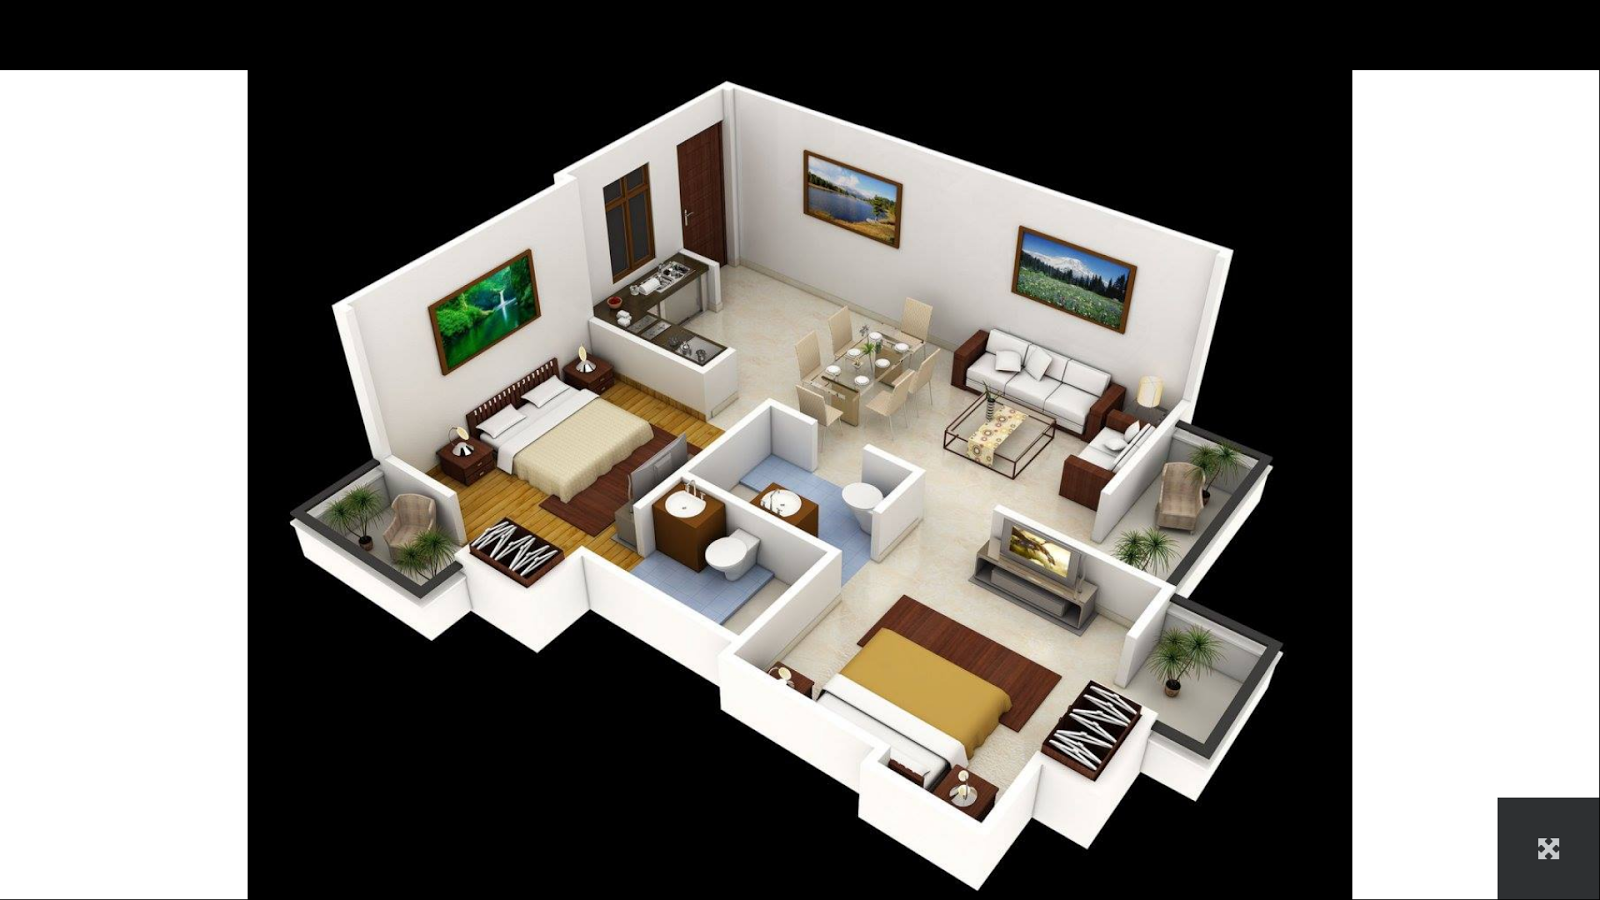 3d house plans 1 2 apk download android lifestyle apps for Home design 3d garden apk